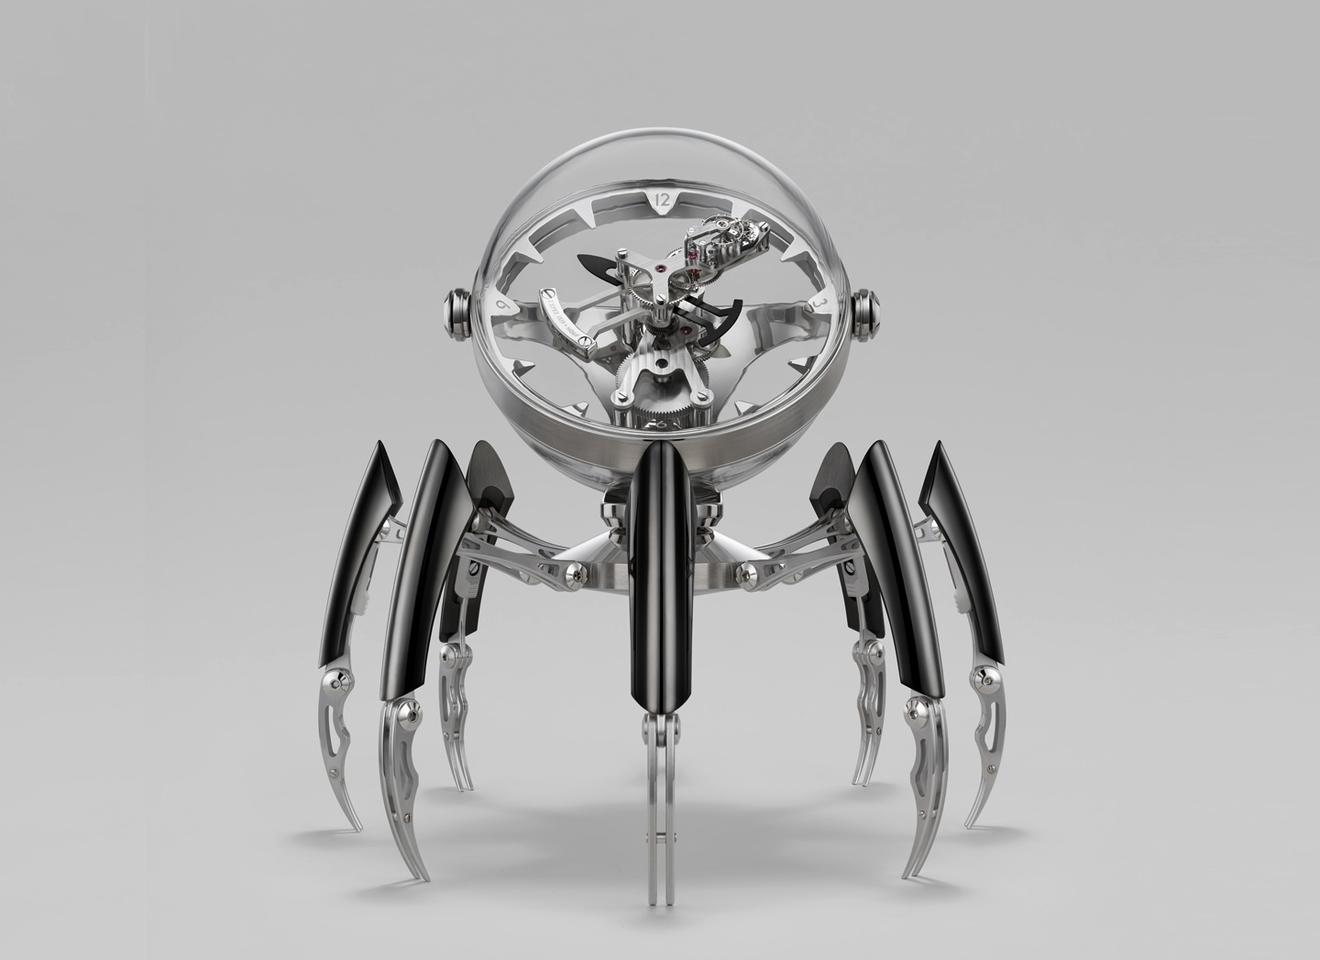 The Octopod measures 28 cm (11 in) across and 28 cm tall when standing